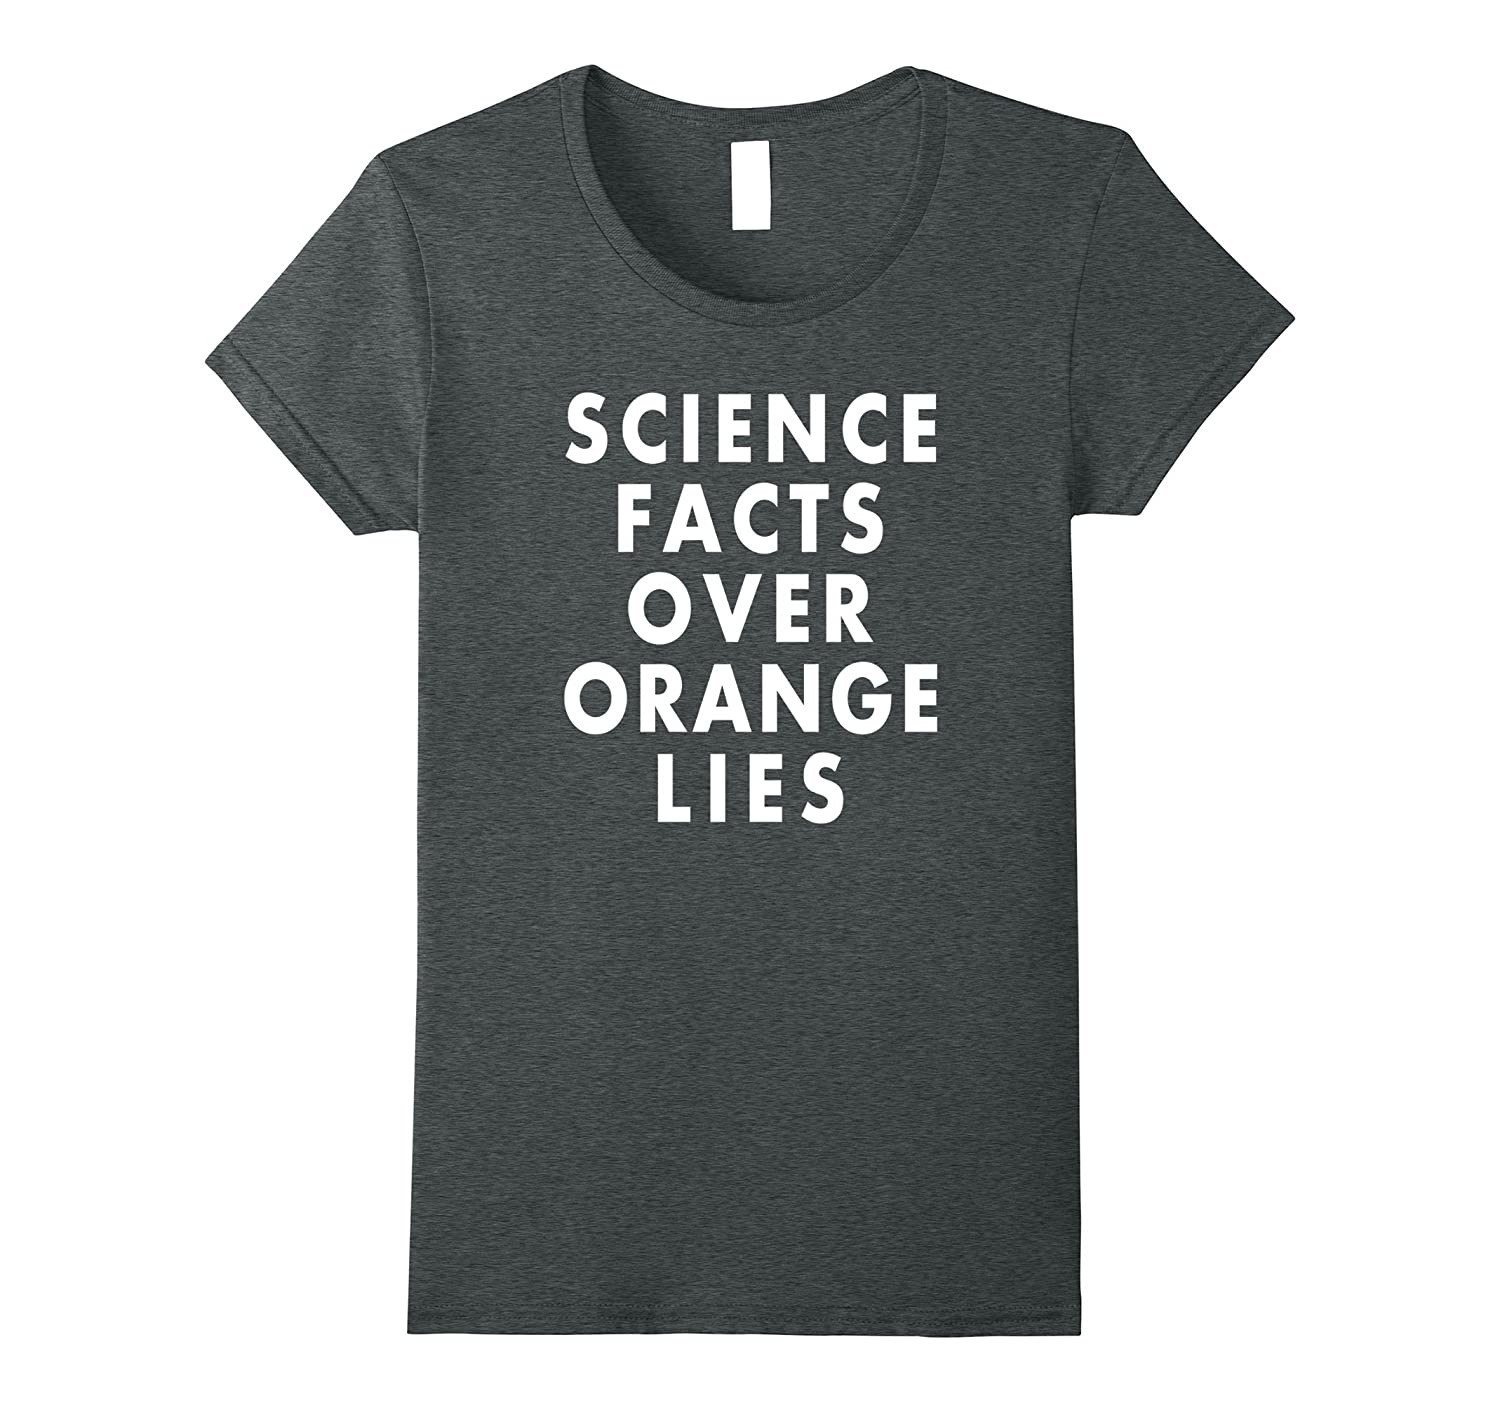 Science Facts Over Orange Lies Activist Tshirt